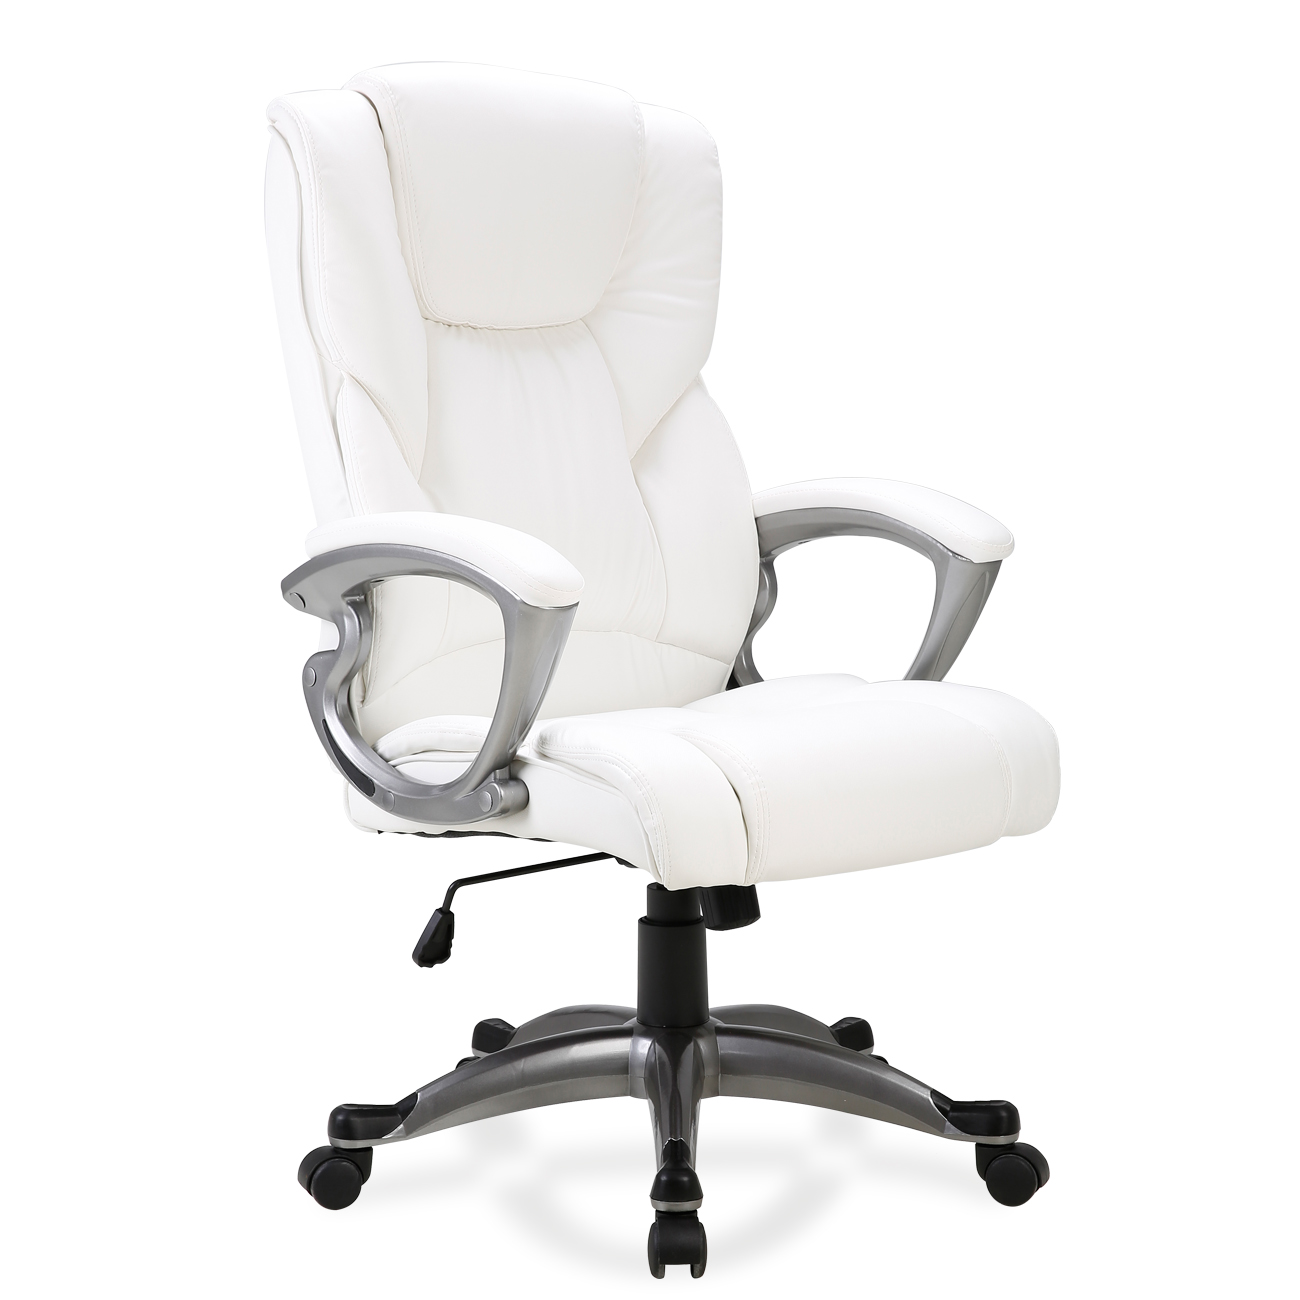 Ergonomic Computer Chair Executive Office Chair High Back Task Ergonomic Computer